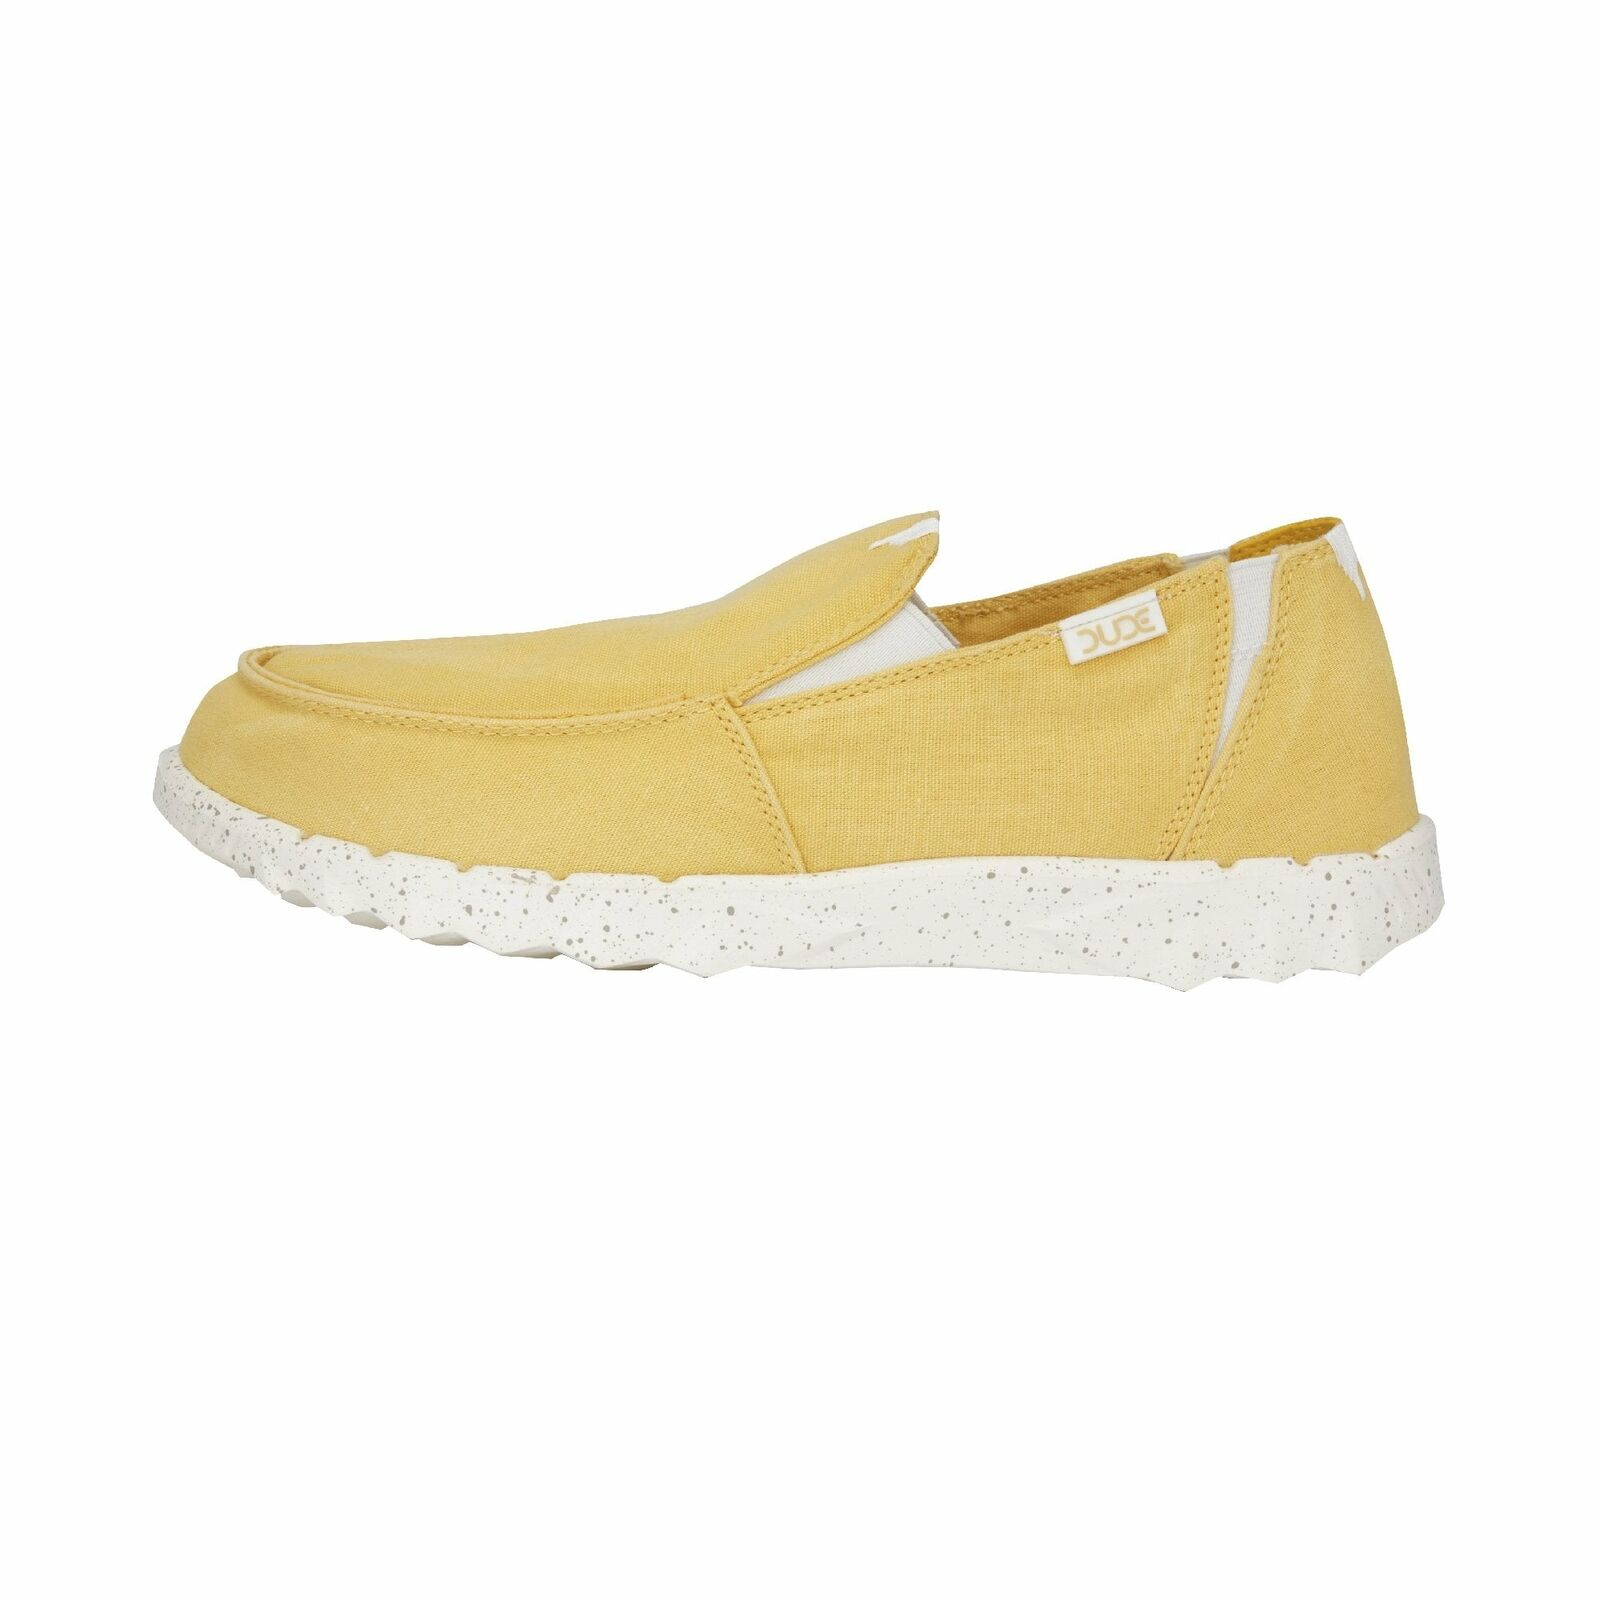 Hey Dude shoes Men's Farty Washed Yellow Slip On Mules